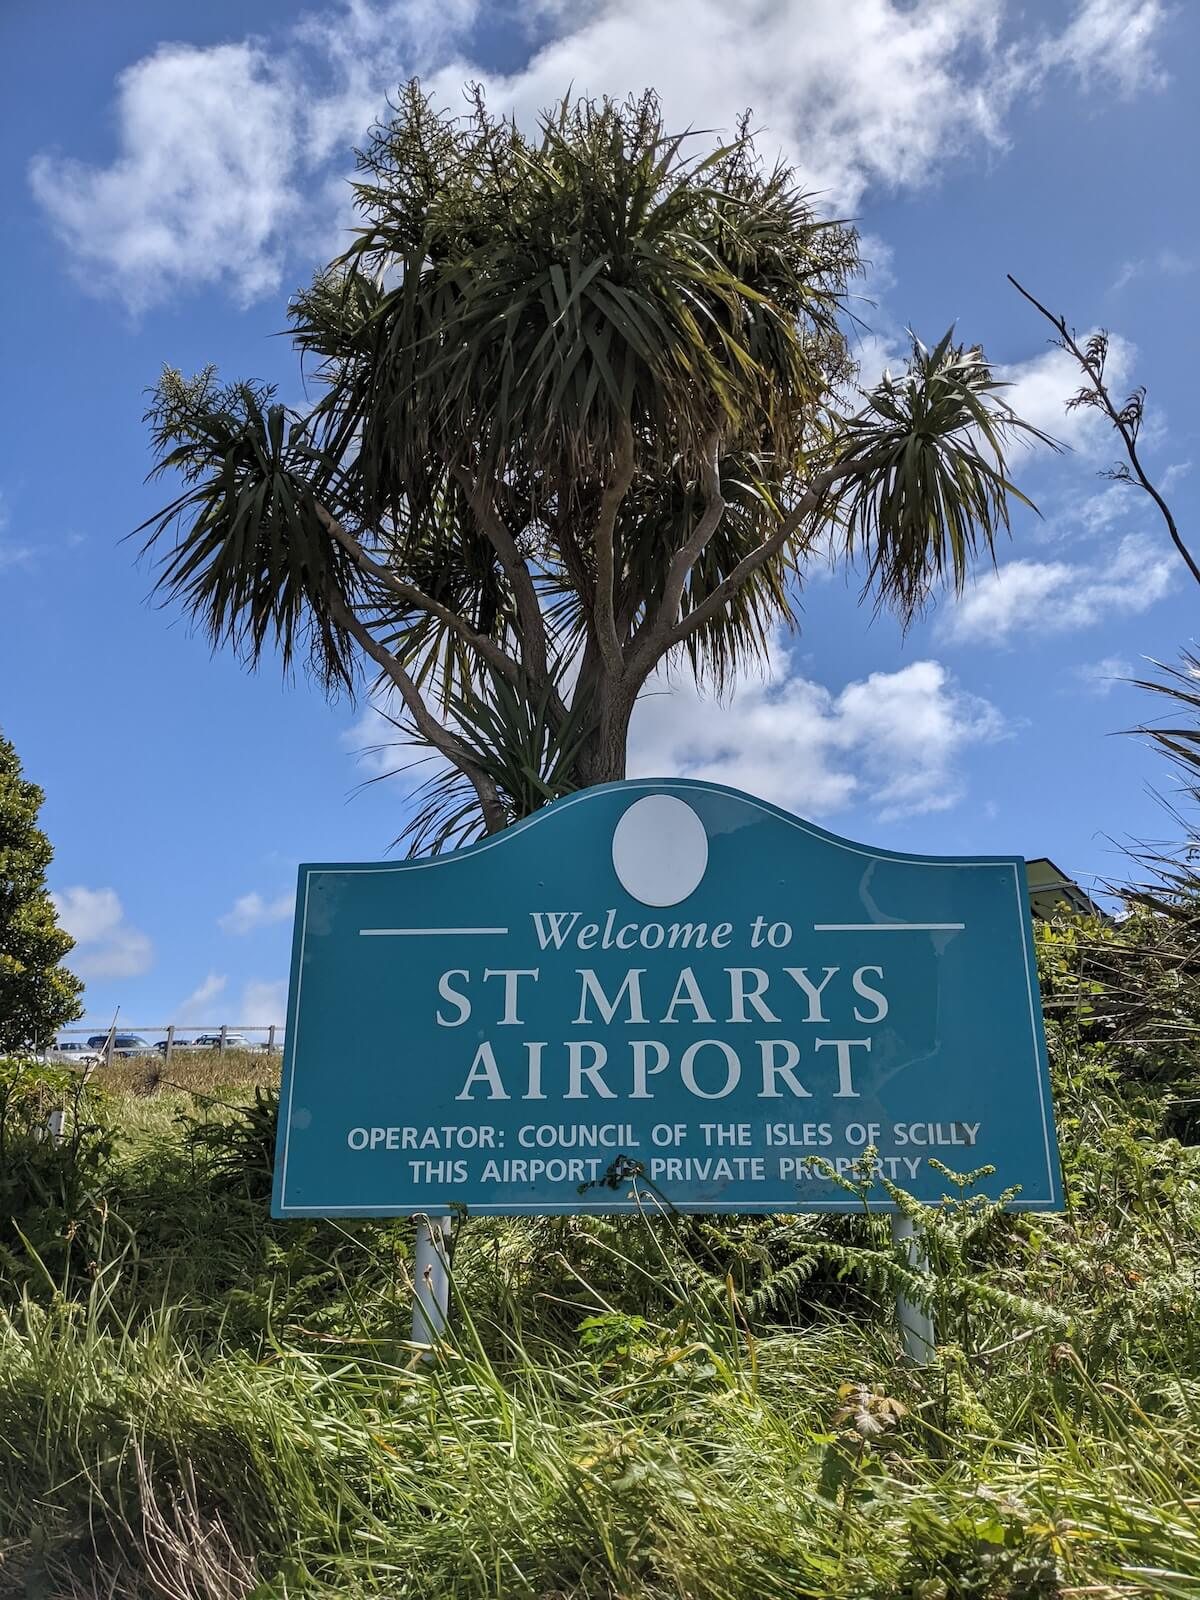 Airport on the Isles of Scilly